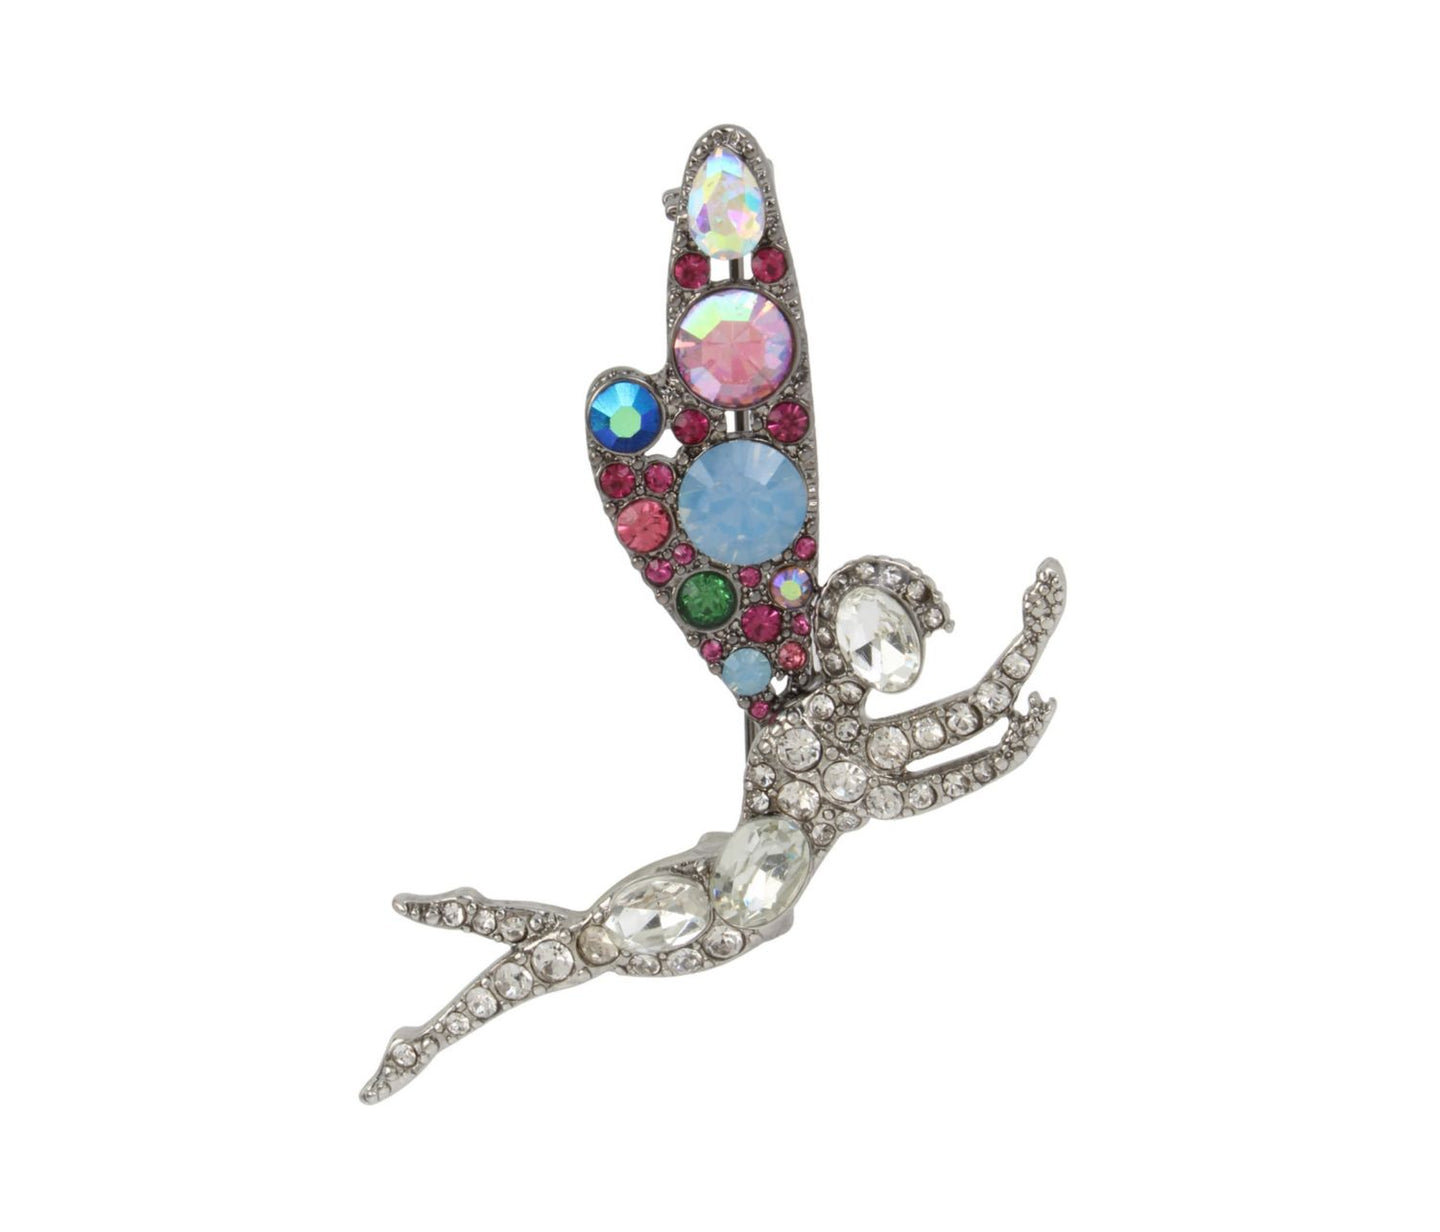 FAIRYTALE DREAMS FAIRY PIN MULTI - JEWELRY - Betsey Johnson